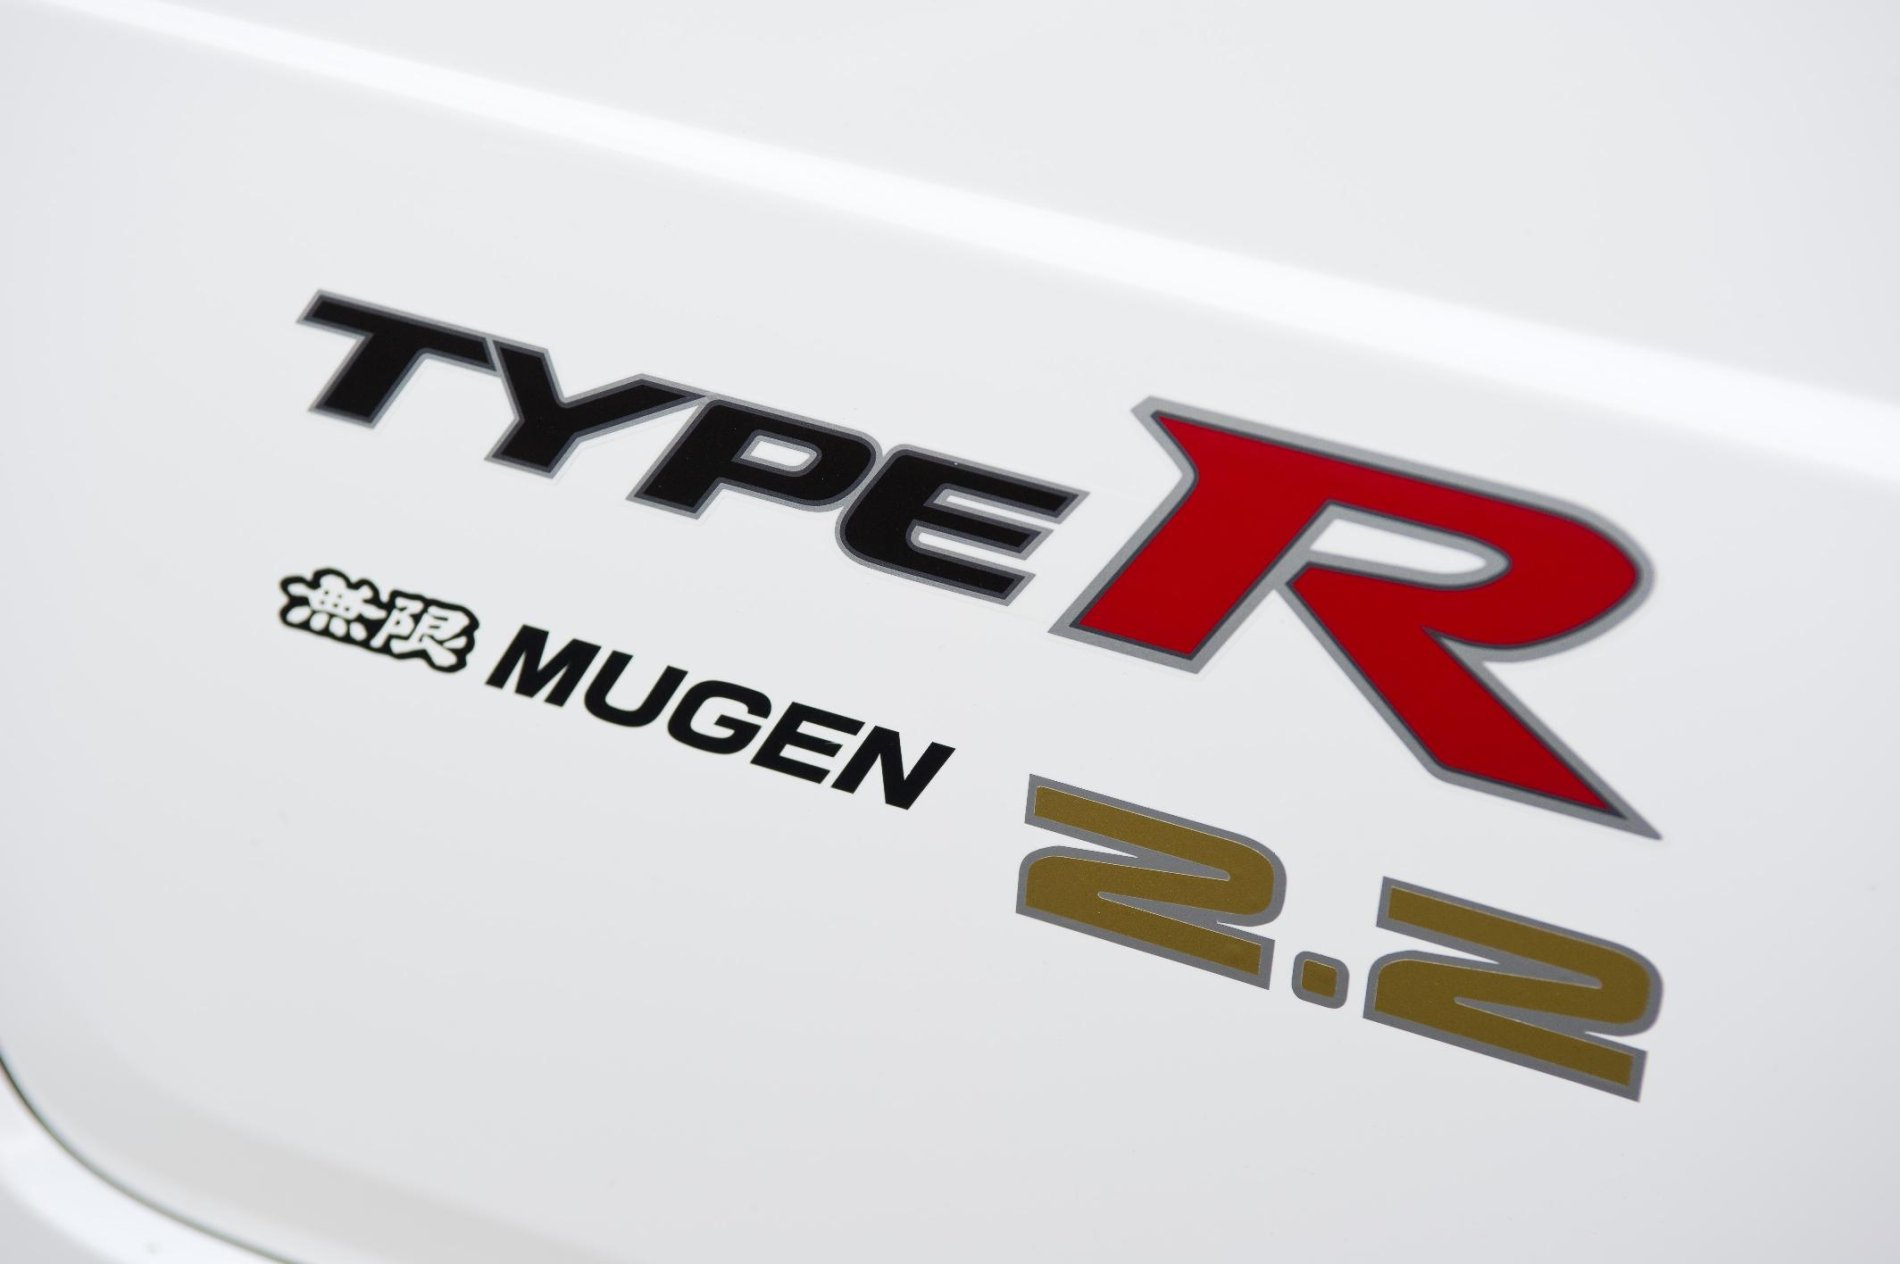 Honda Civic Type R by Mugen - Honda Civic Type R by Mugen